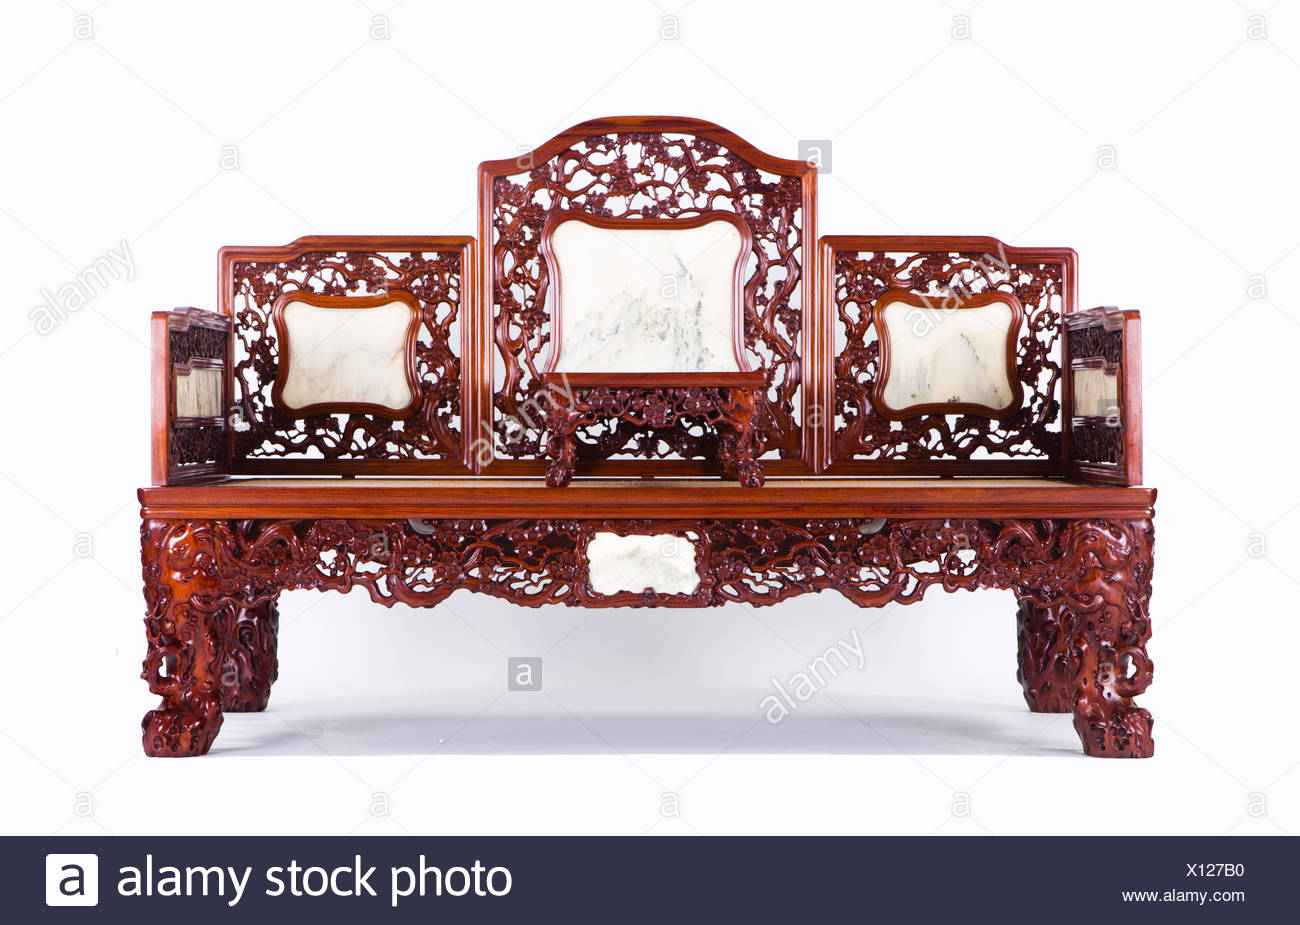 Chinese Couch - Stock Image